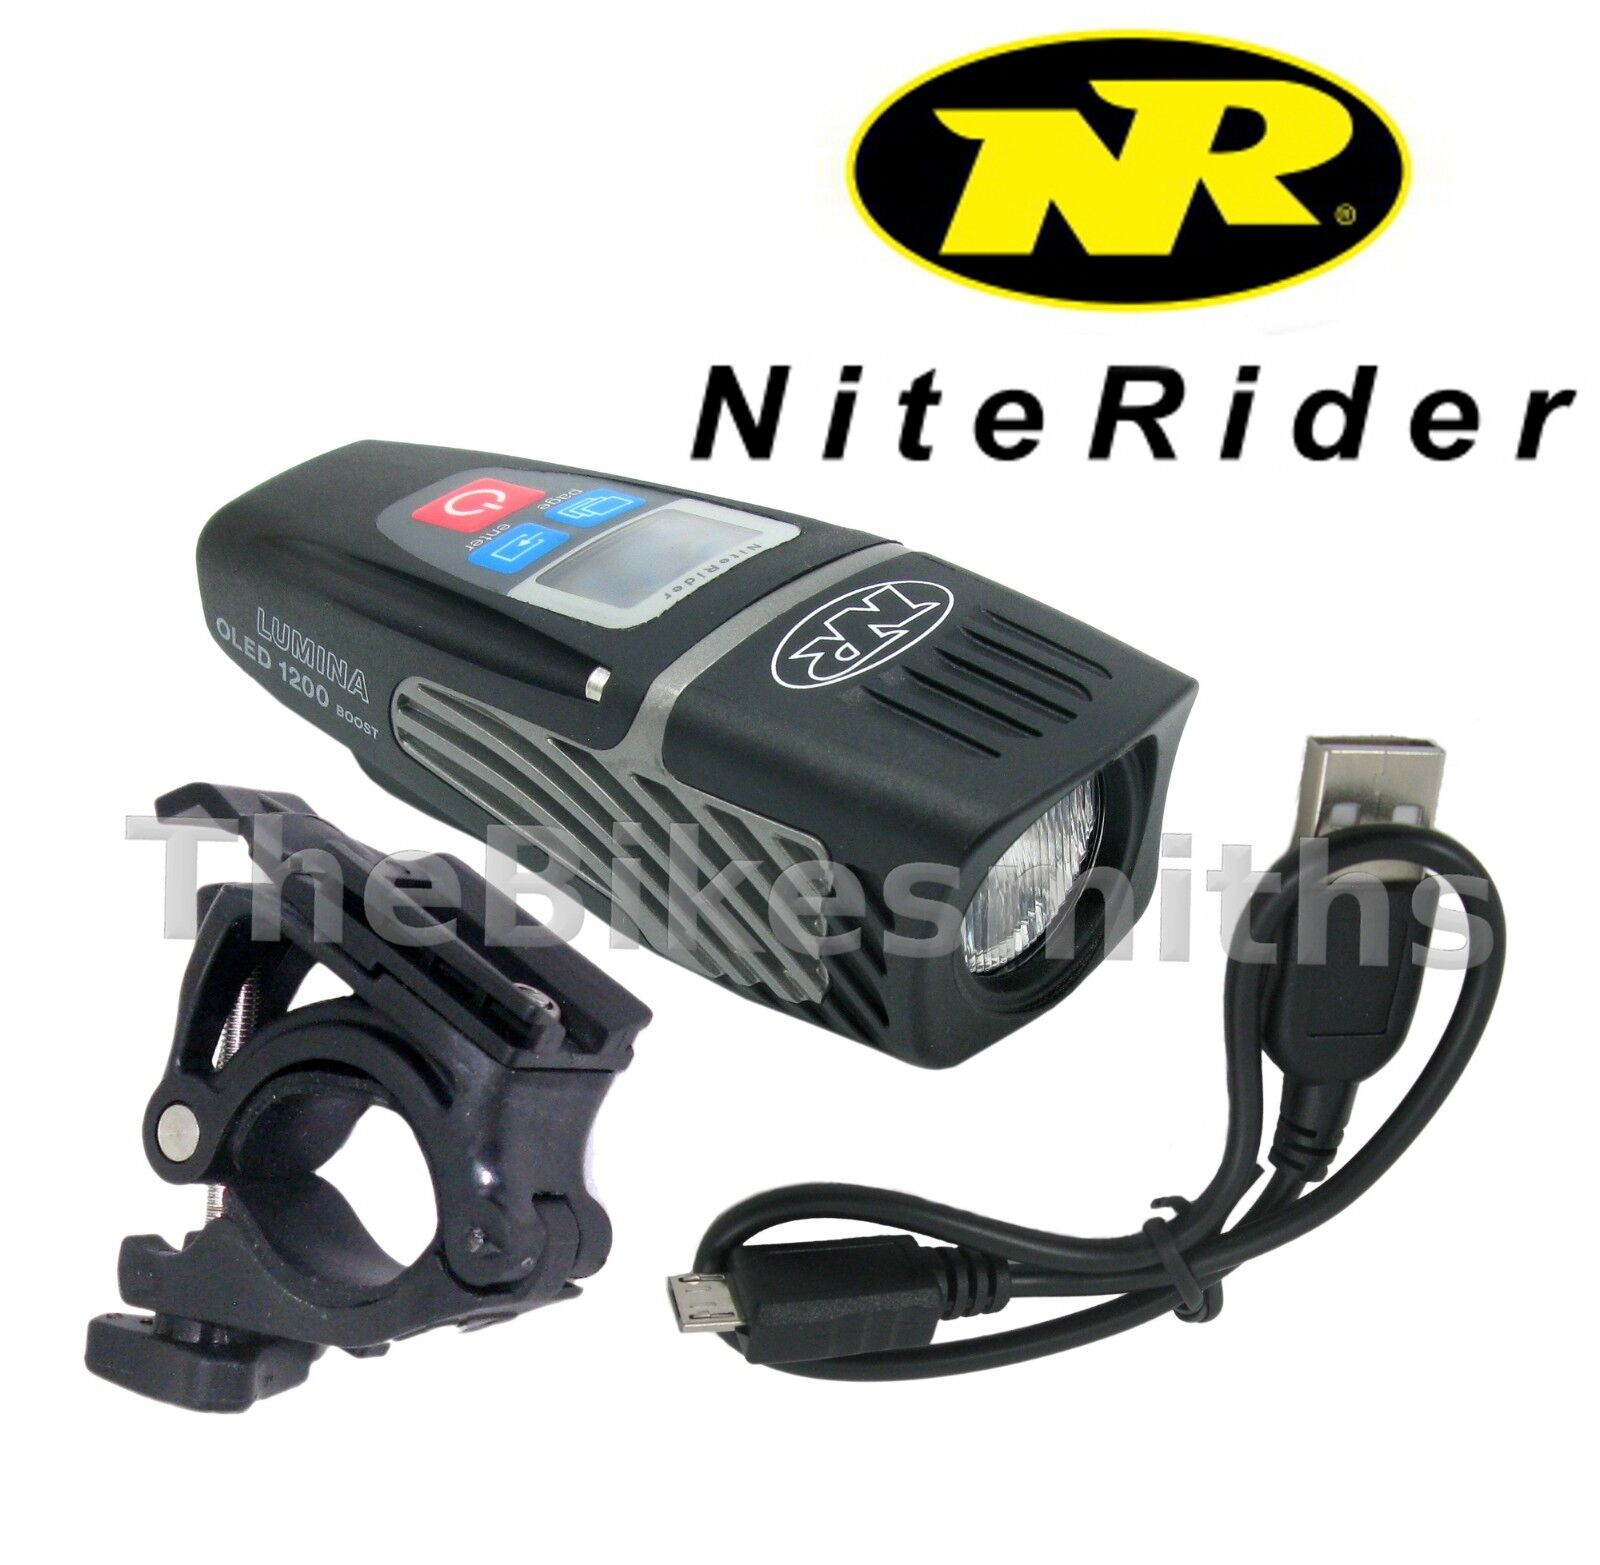 Niterider Lumina OLED 1200 Boost Lumens Display Screen Boost Bike Head Light USB